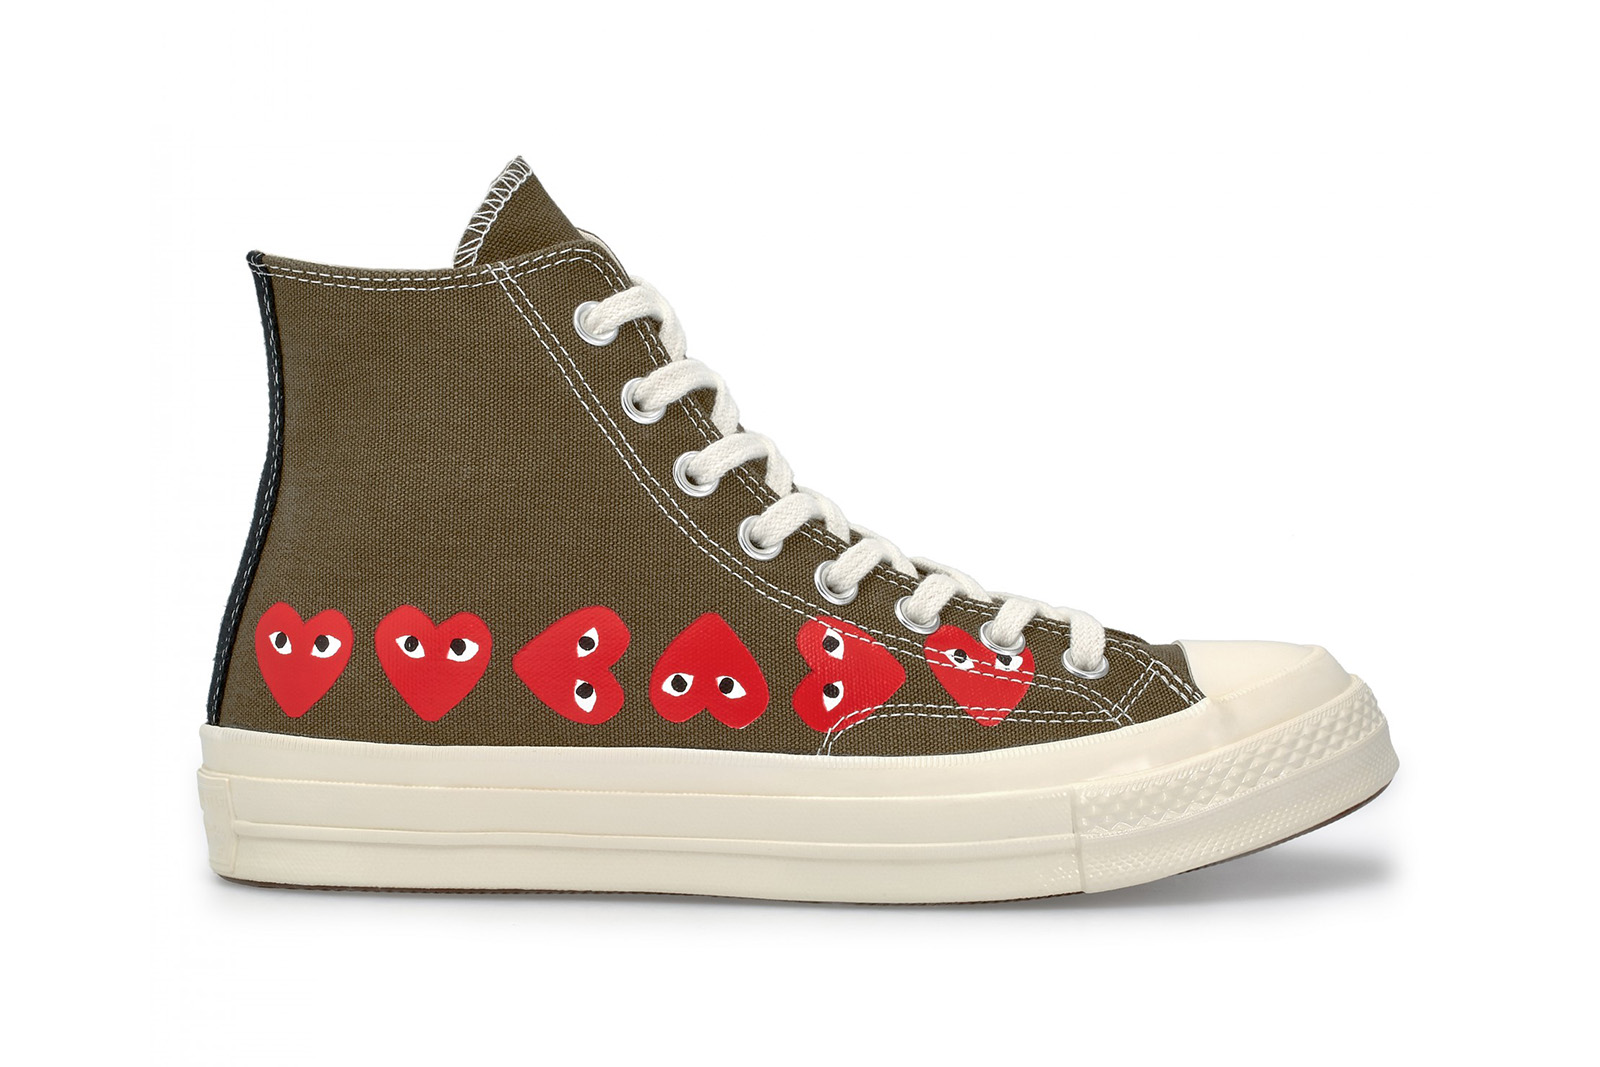 CdG PLAY x Converse Chuck Taylor All Star Date